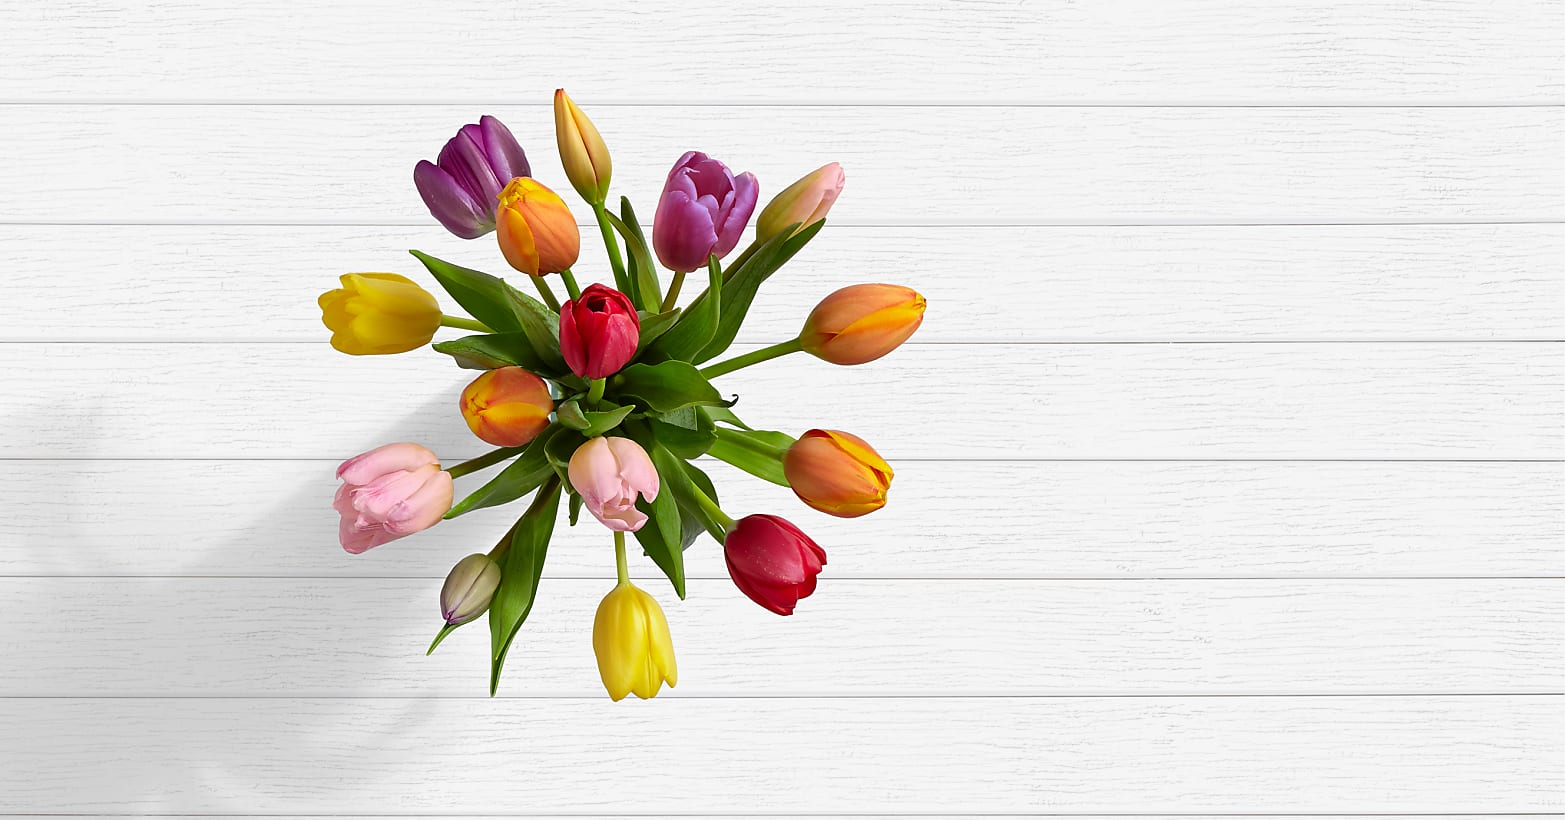 15 Multi-Colored Tulips - Image 2 Of 4